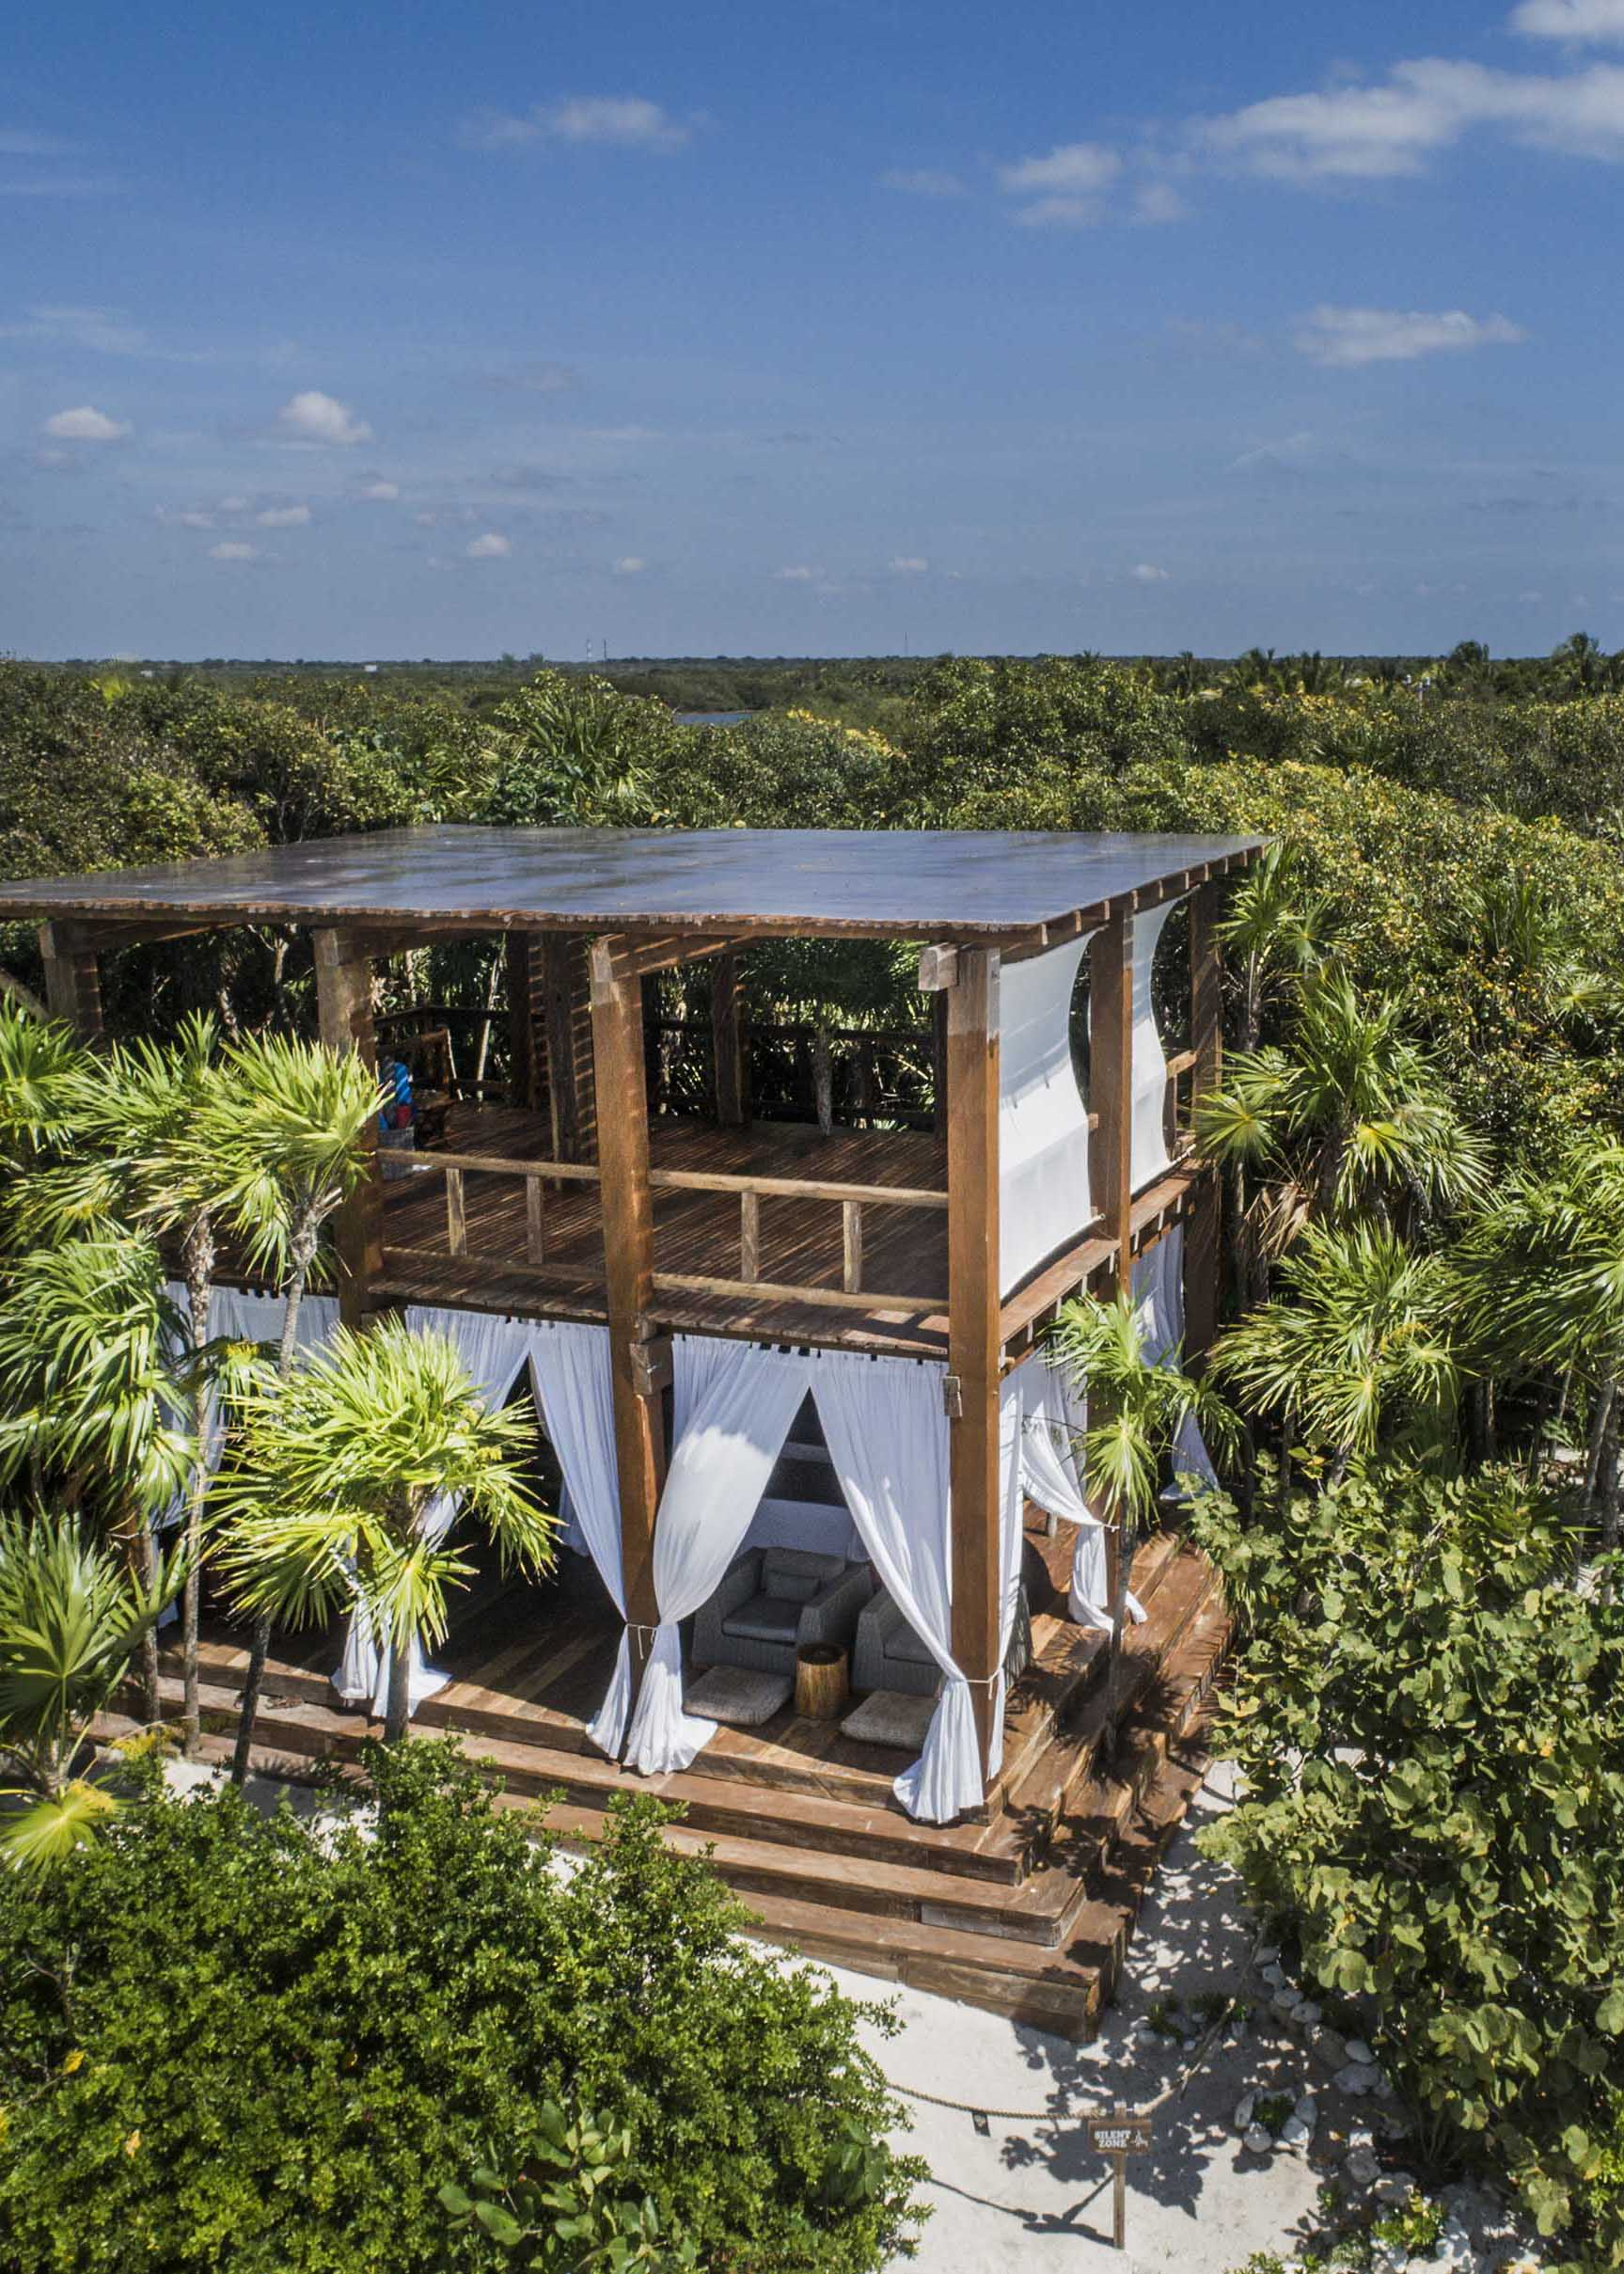 Jashita Hotel, Tulum - wooden two story open air patio with white curtains in a jungle landscape